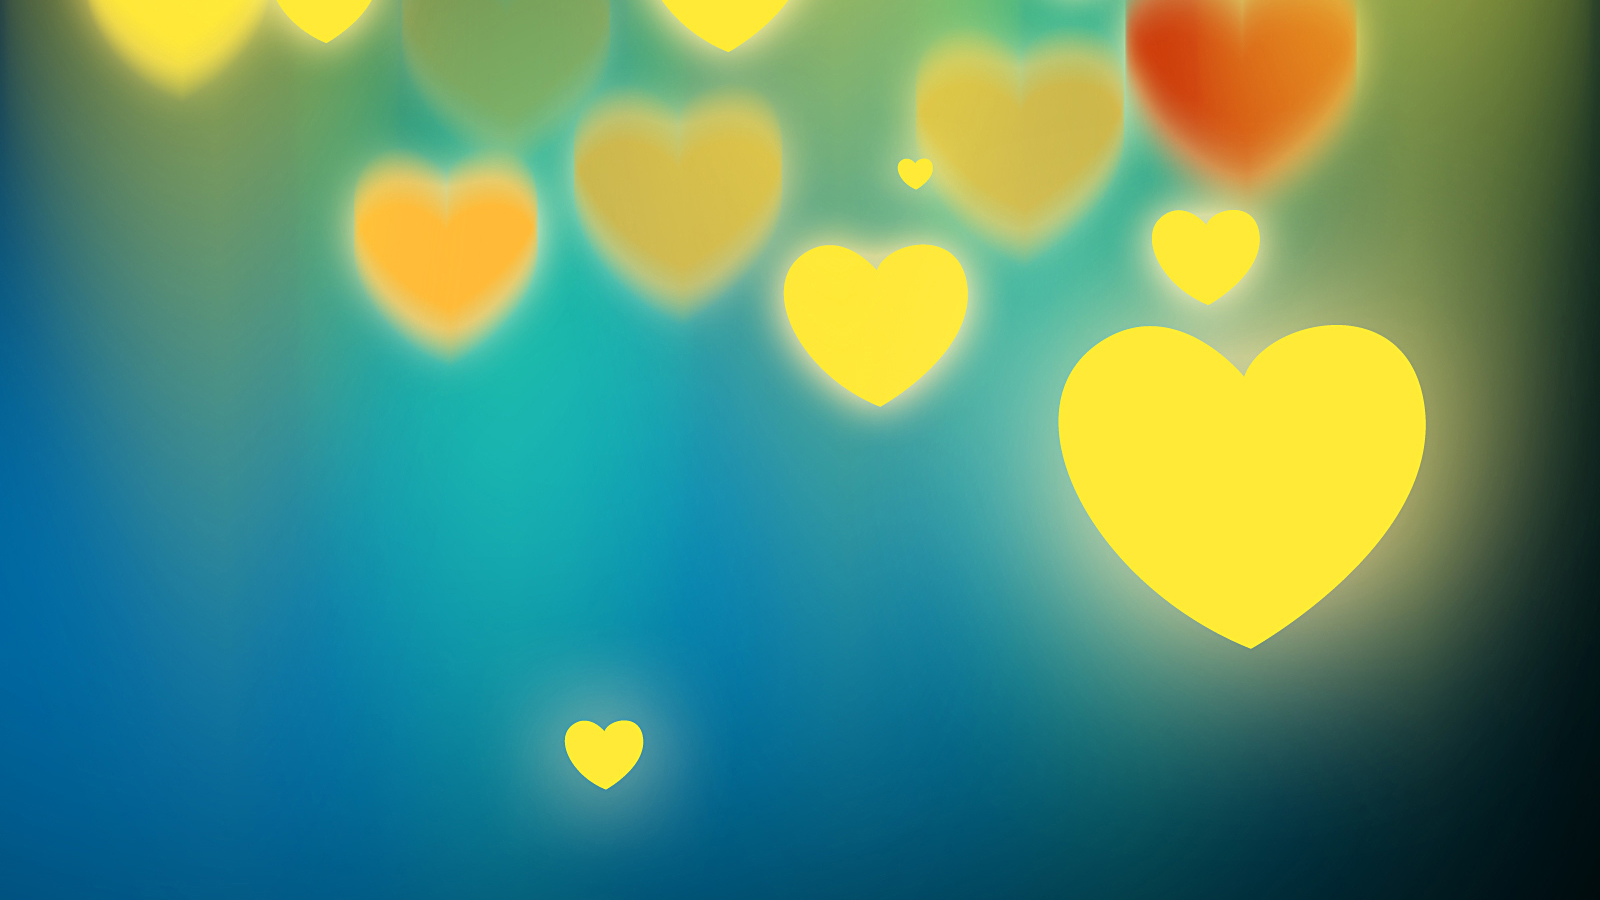 Free Glowing Hearts Background